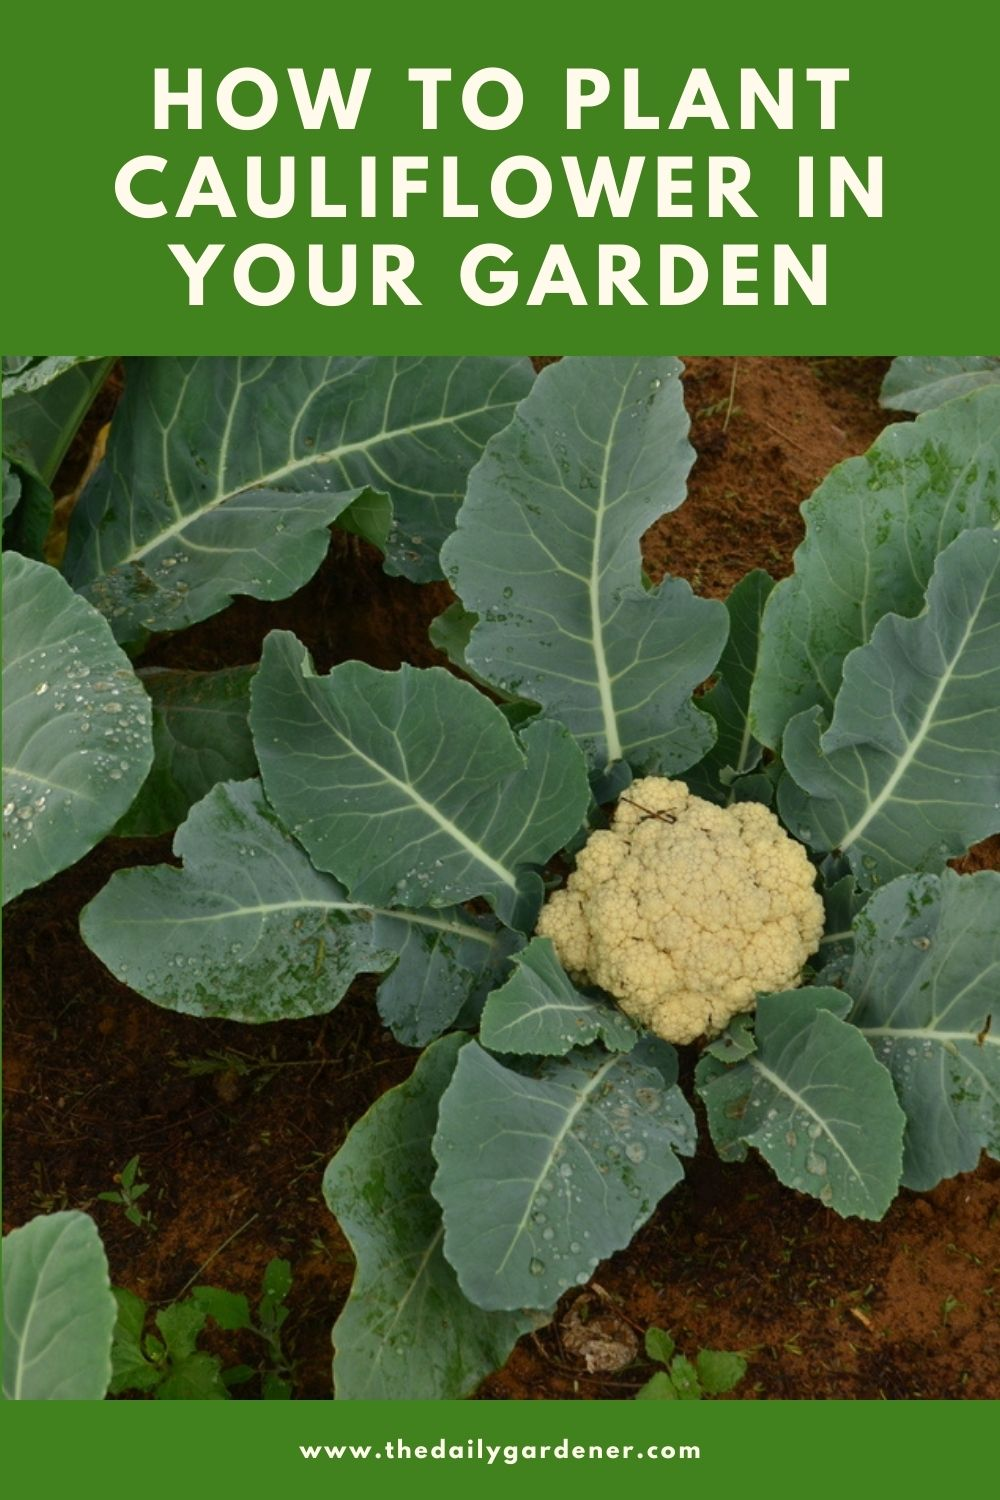 How to Plant Cauliflower in Your Garden (Tricks to Care!) 2